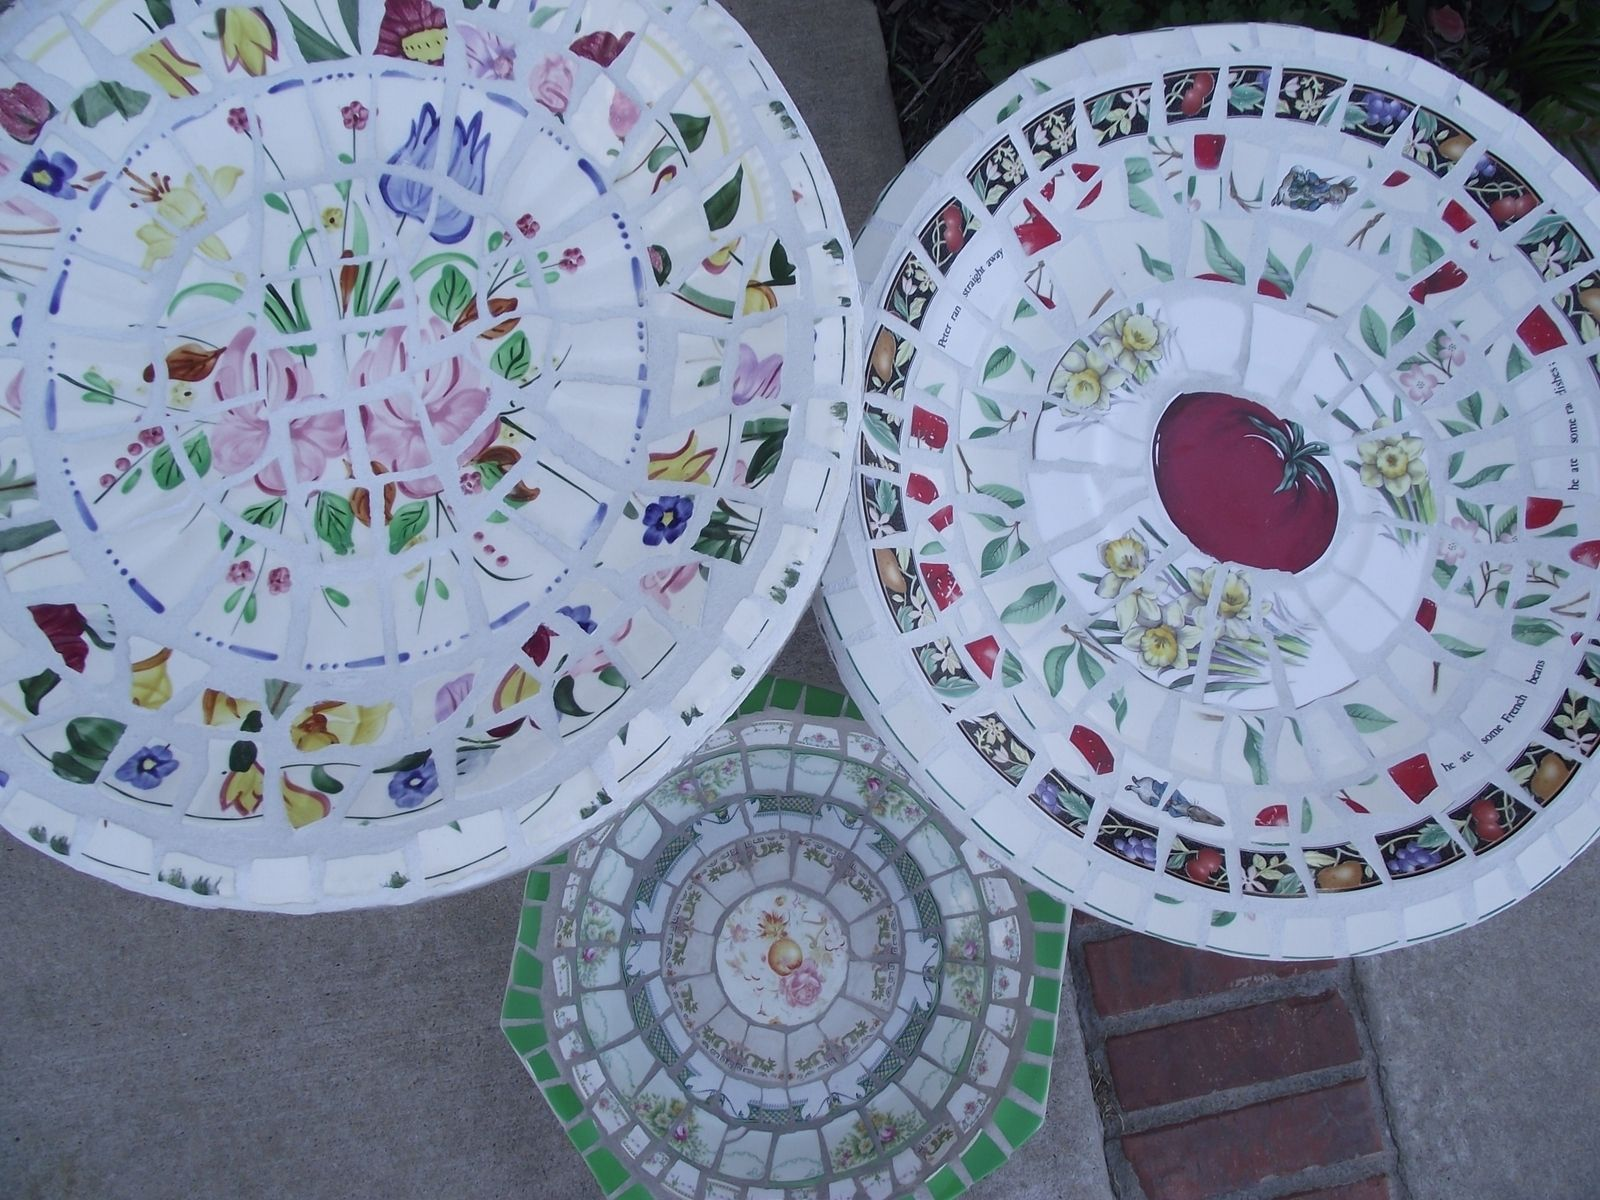 Custom Made Mosaic Concrete Bird Bath By Vintage Butterfly